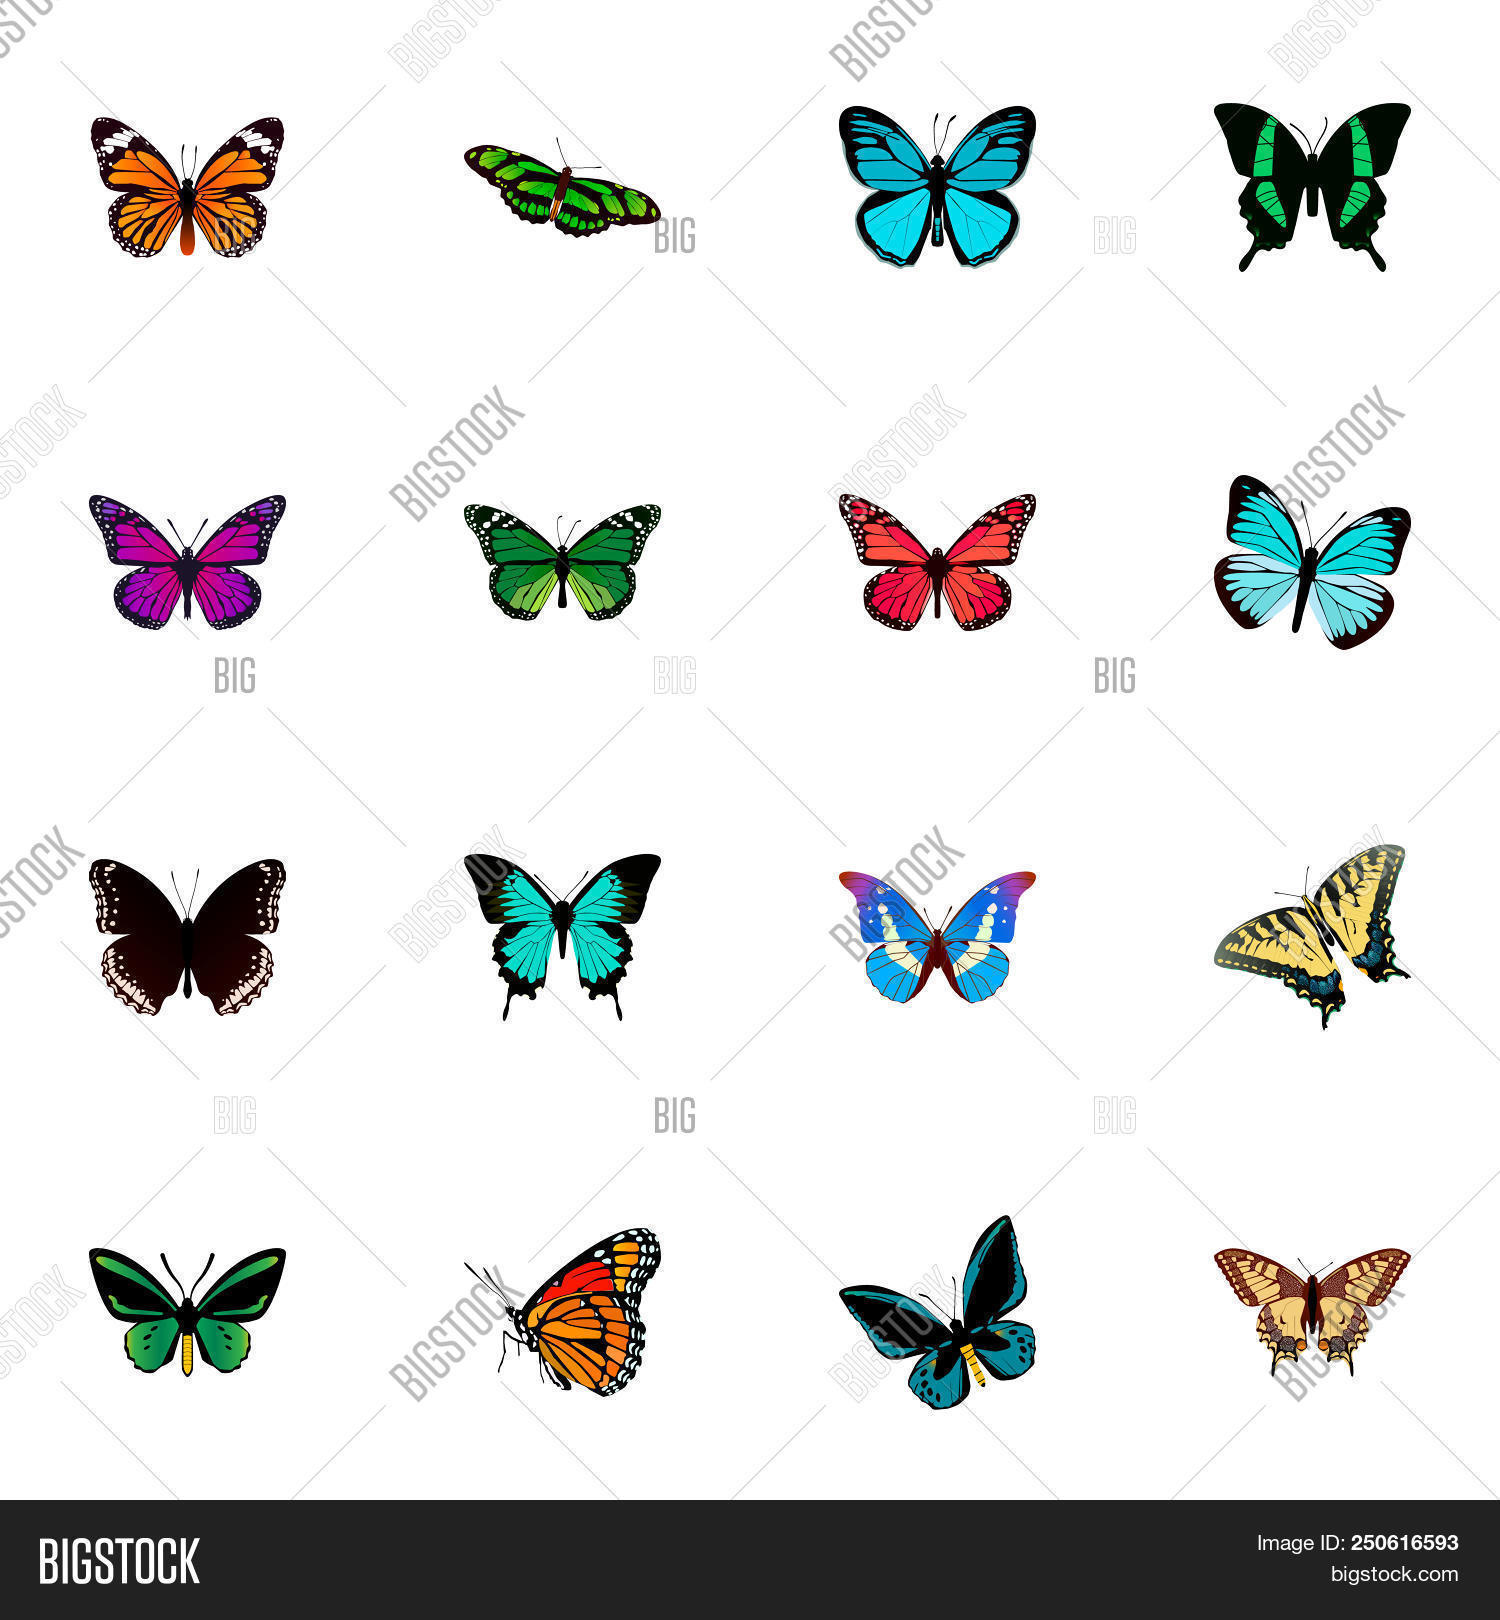 3d,animal,beauty,blue,bright,butterfly,classical,collection,color,colorful,copper,decor,decoration,decorative,design,filigree,flight,fly,free,green,insect,lady,lexias,light,milkweed,monarch,moth,multicolored,natural,object,ornate,painted,papilio,plexippus,red,set,spring,style,summer,swallowtail,tiger,tropical,ulysses,web,white